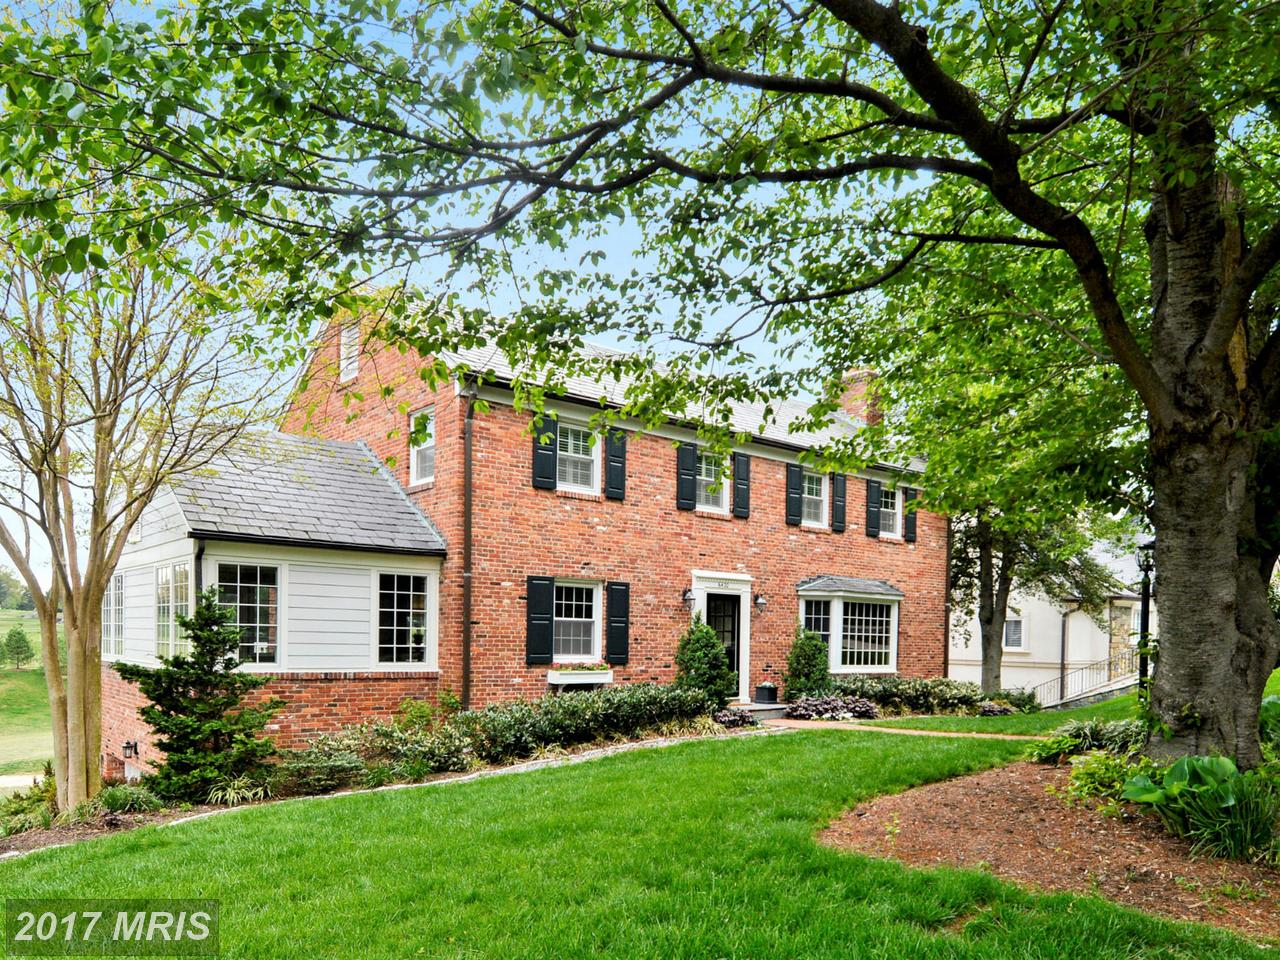 Maison unifamiliale pour l Vente à Colonial, Detached - CHEVY CHASE, MD 6420 GARNETT DR Chevy Chase, Maryland,20815 États-Unis